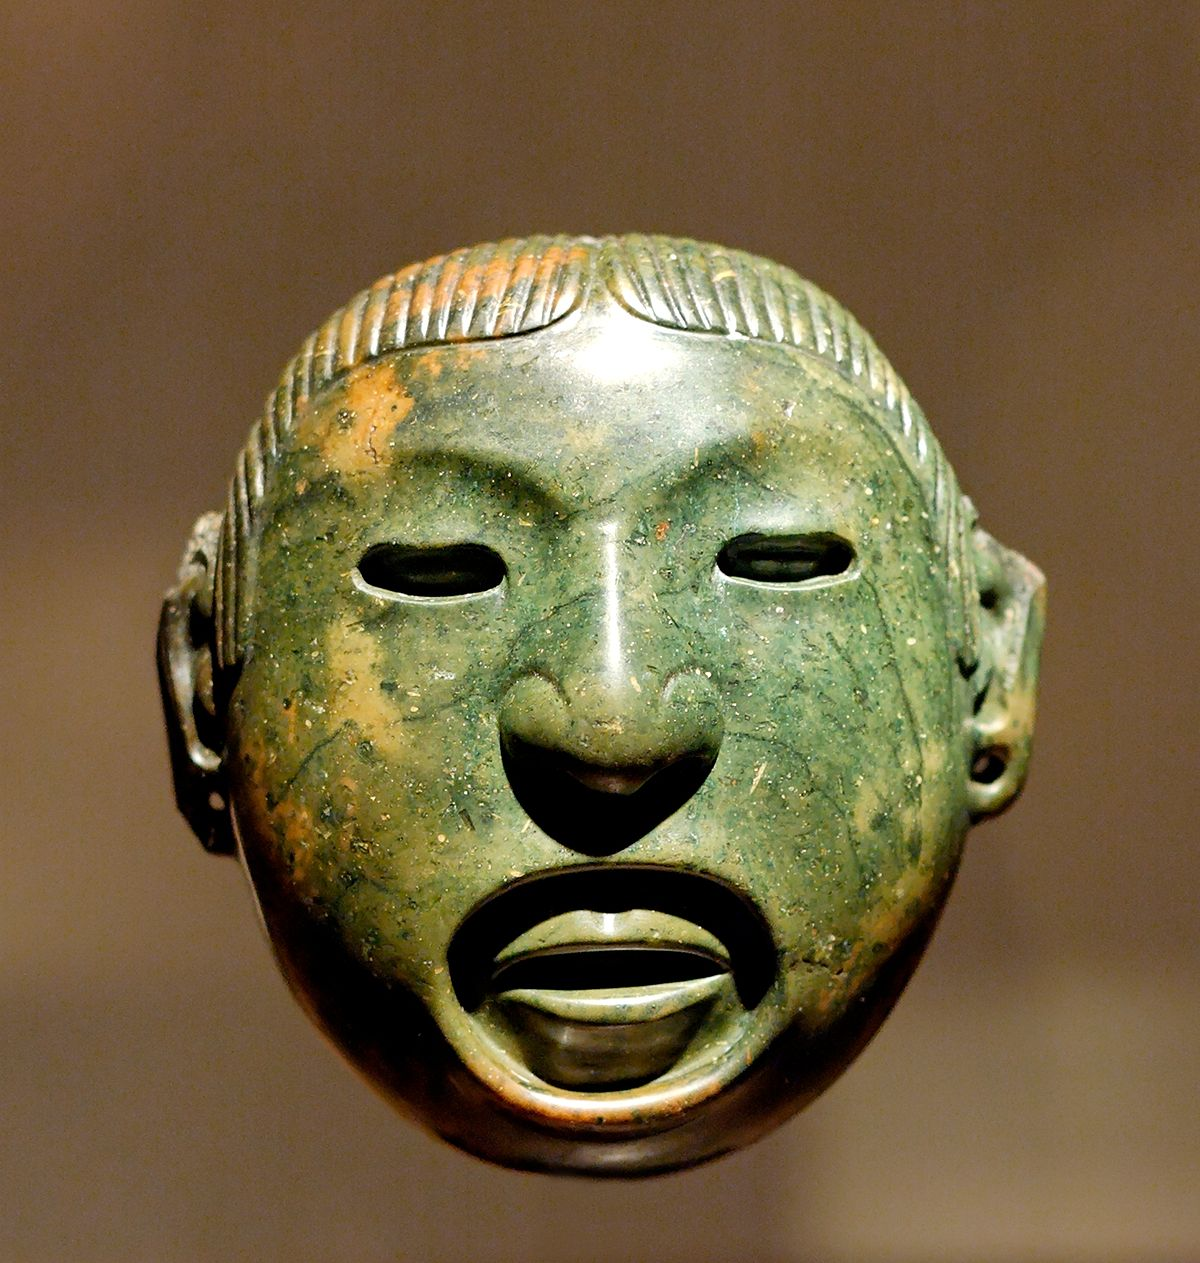 1200px-Xipe_Totec_mask_Louvre_MH_78-1-60